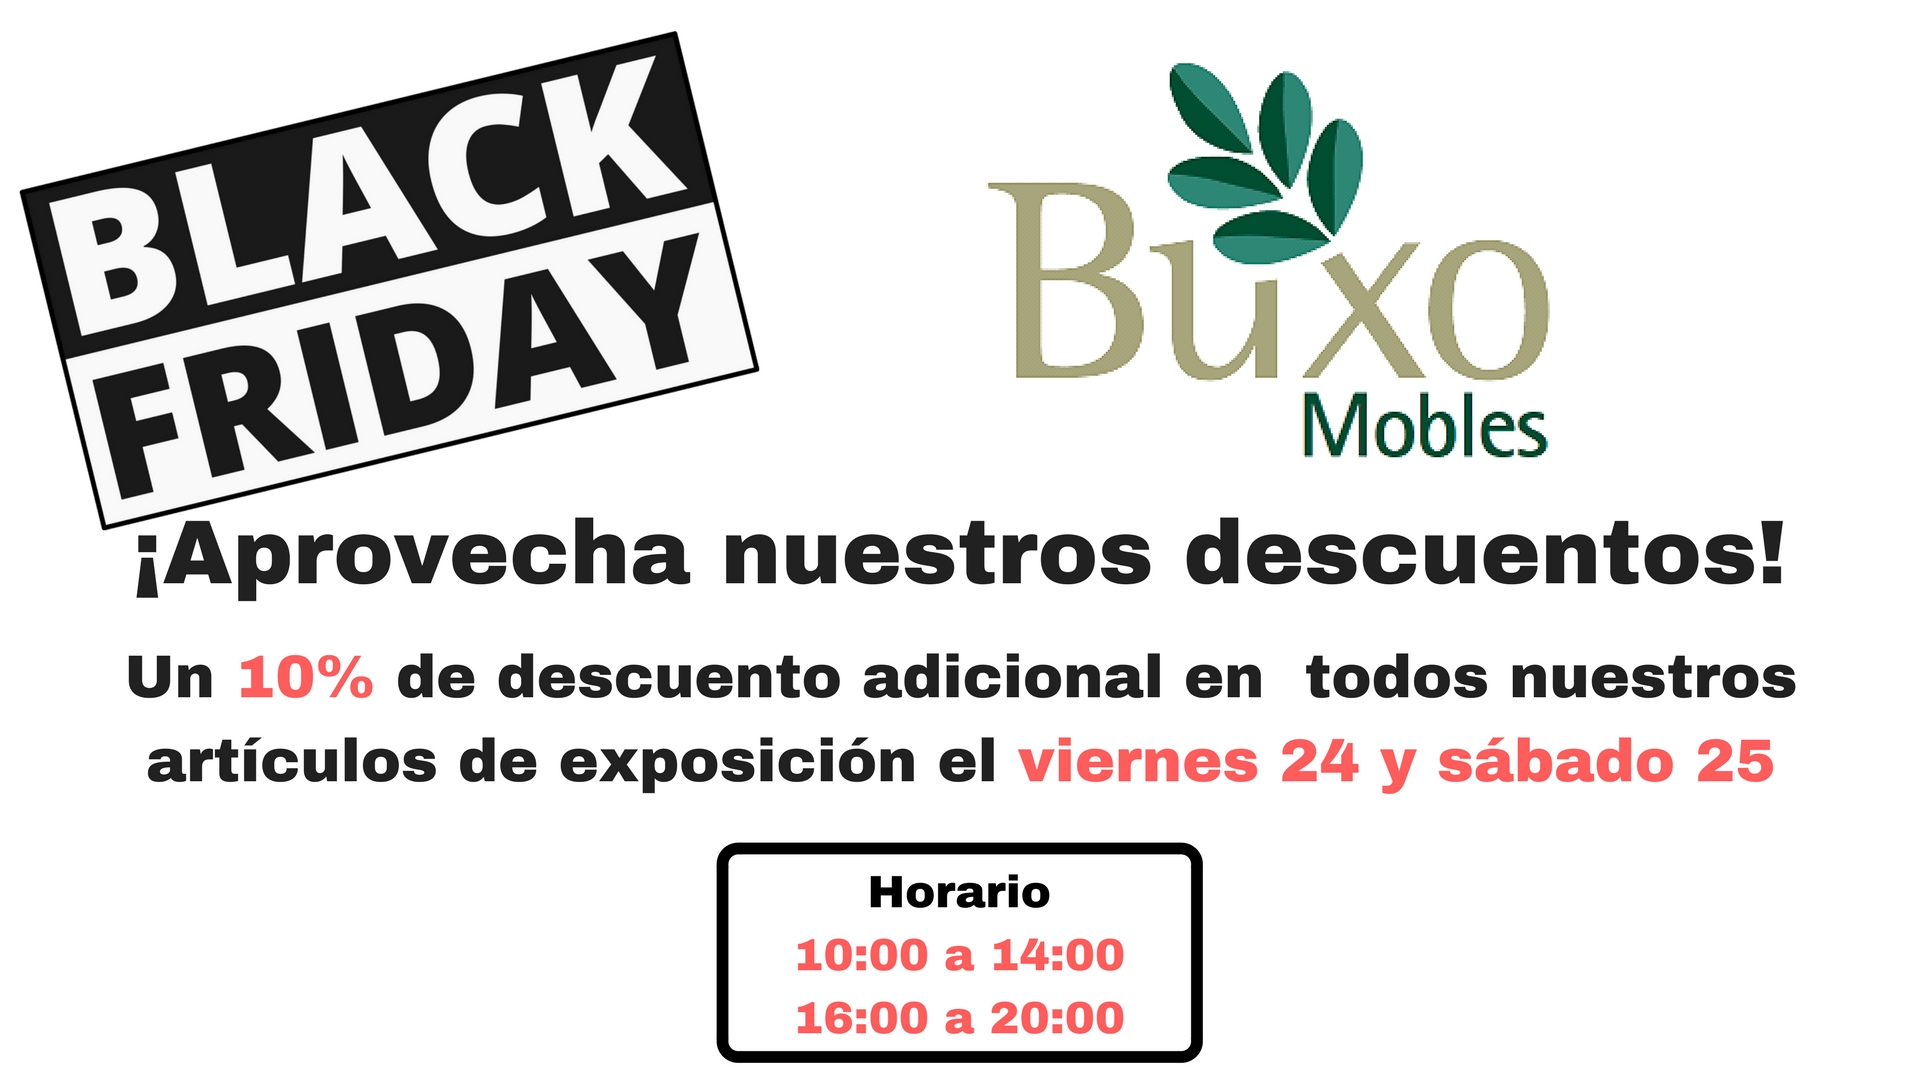 Black Friday en Mobles Buxo